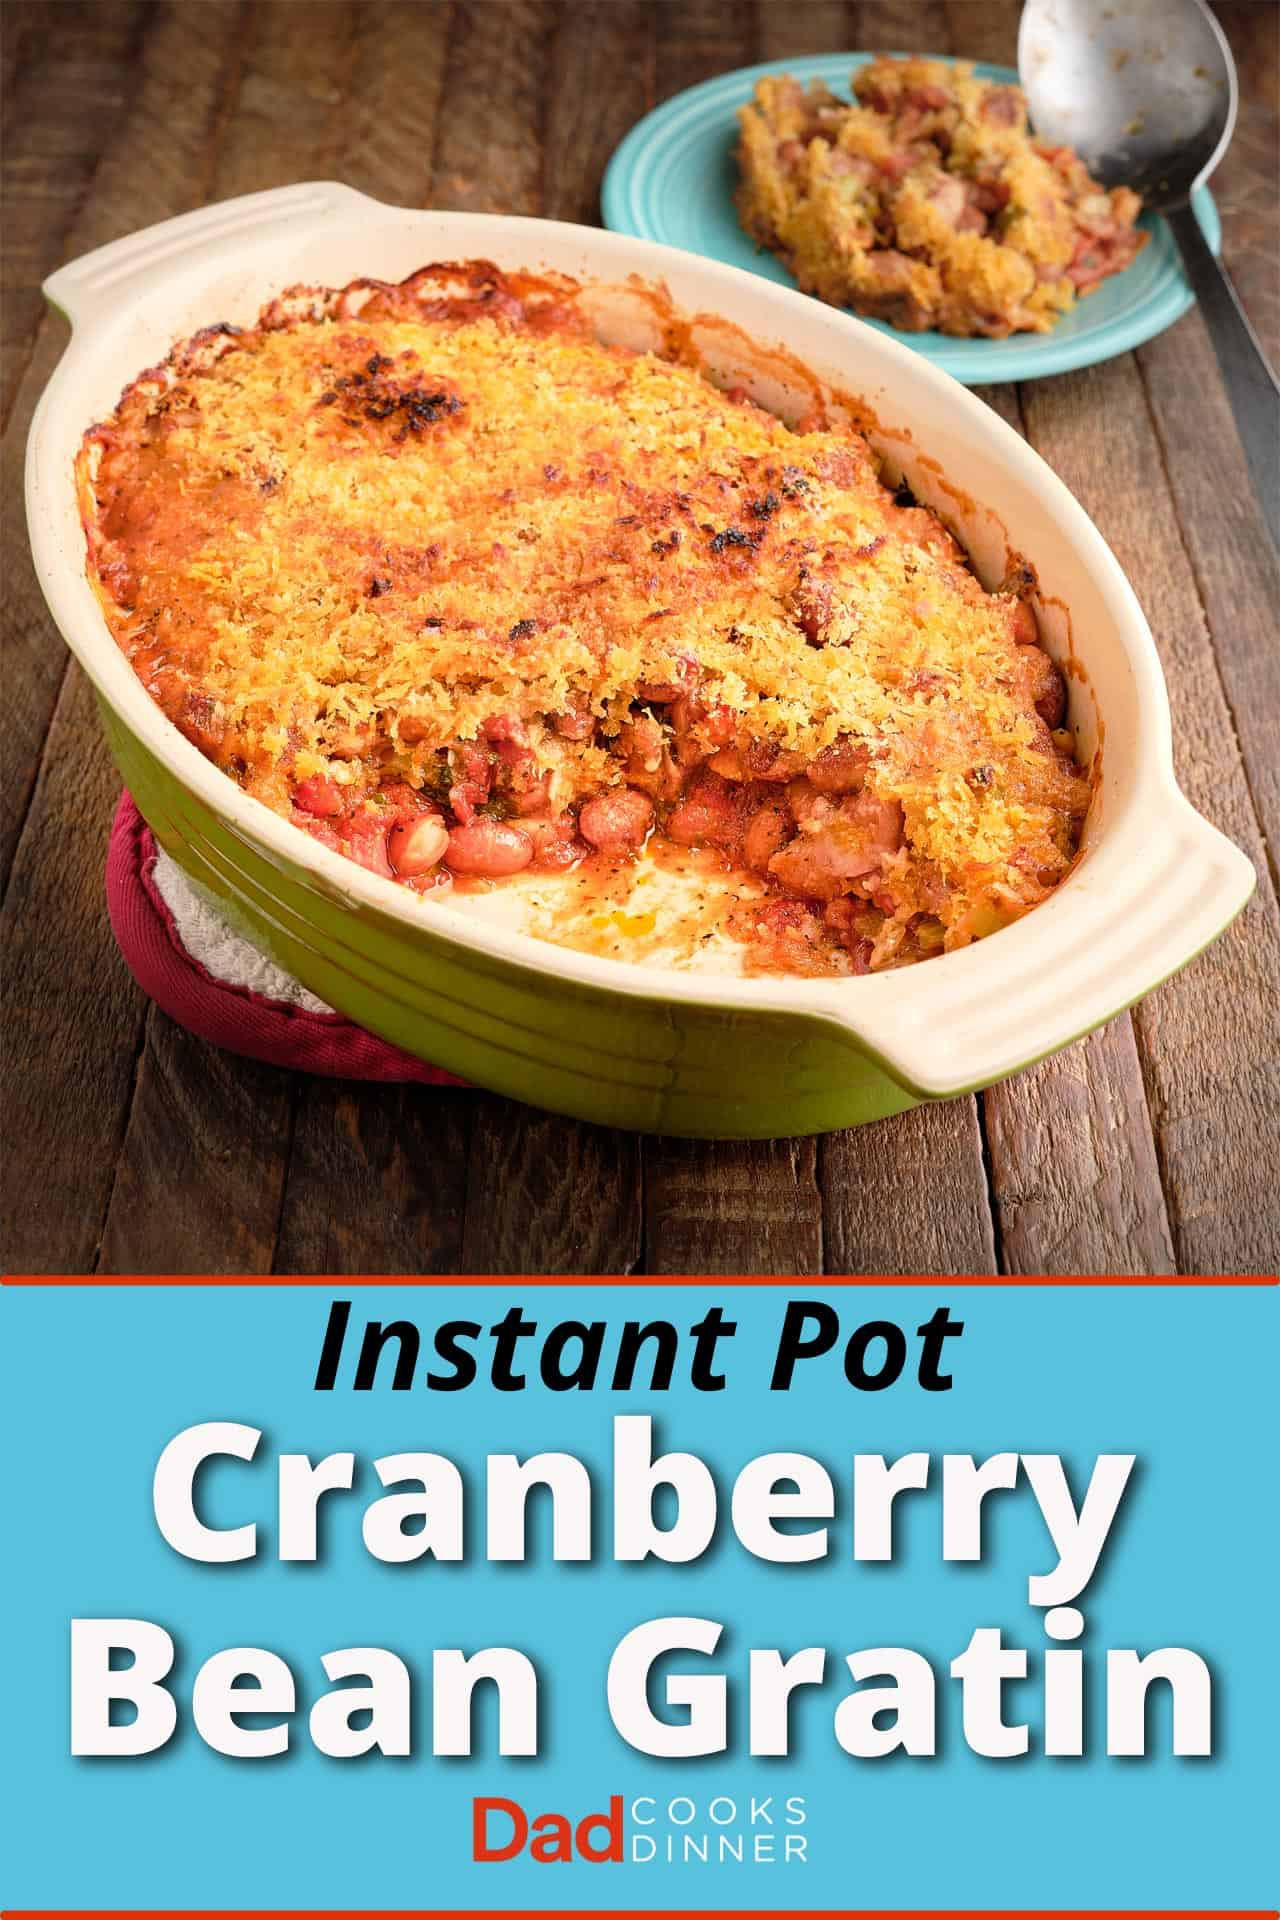 A baking dish of cranberry bean gratin, with a serving scooped out, and a plate with a scoop and some of the gratin in the background